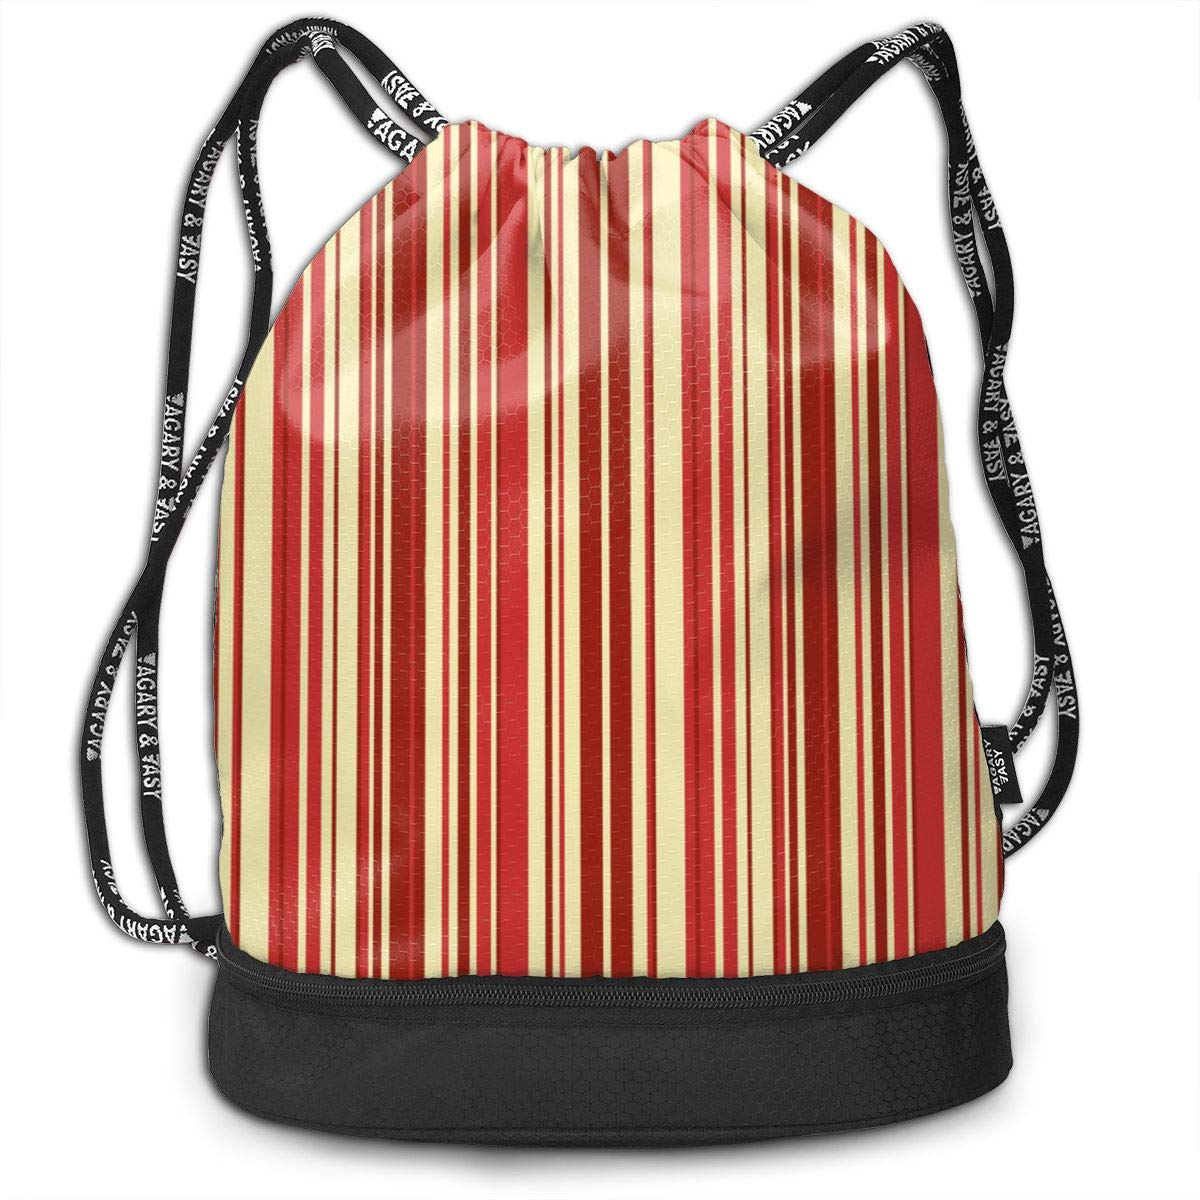 Sck Damask Red Cream Stripe Drawstring Backpack Sports Athletic Gym Cinch Sack String Storage Bags for Hiking Travel Beach